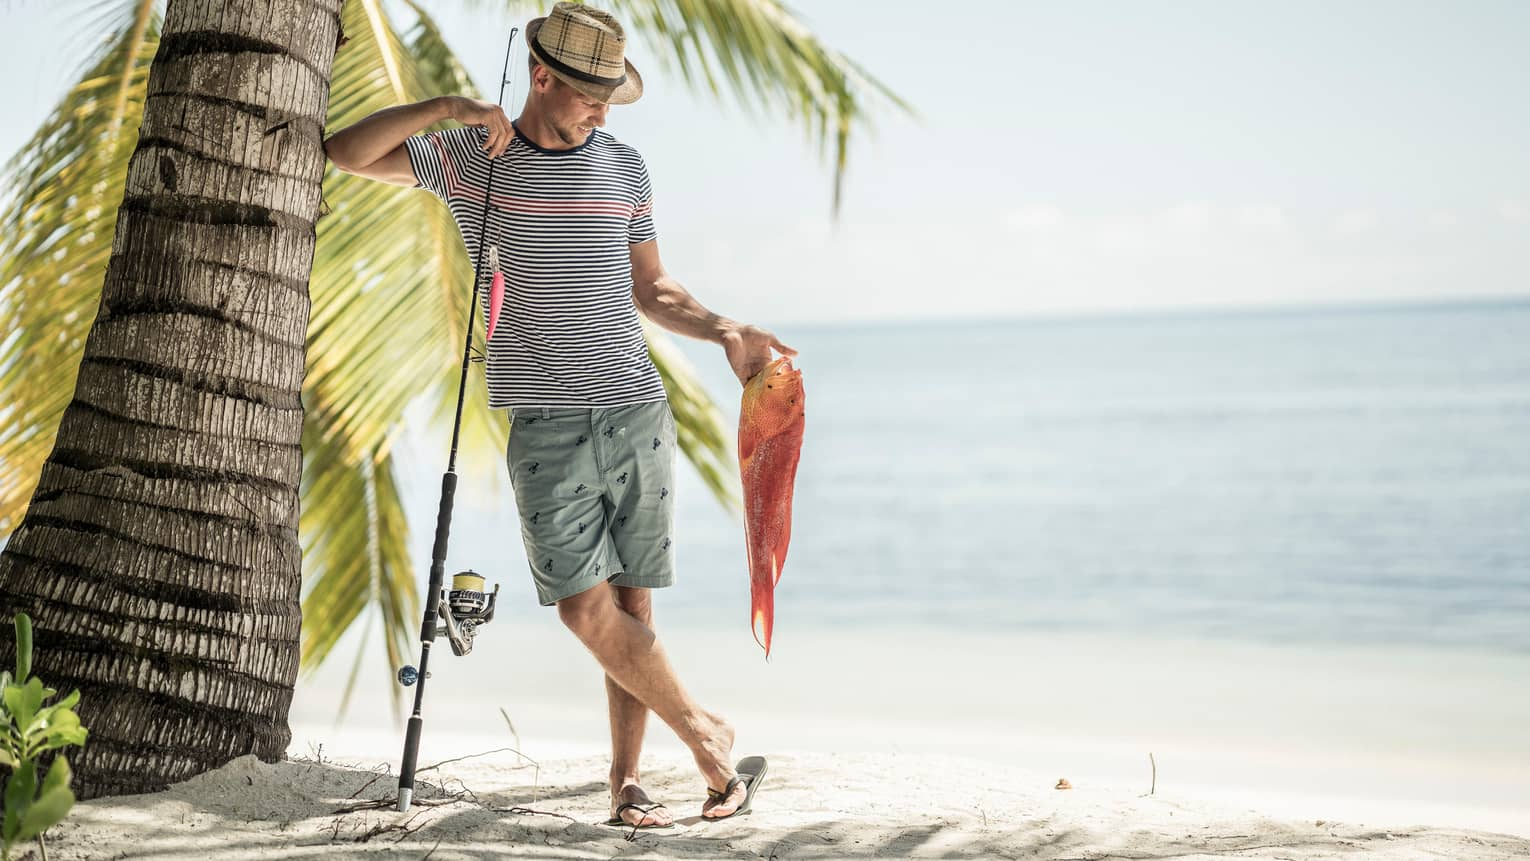 Executive Chef Olivier Barré on the beach, leaning on palm tree while holding a fishing pole and fish